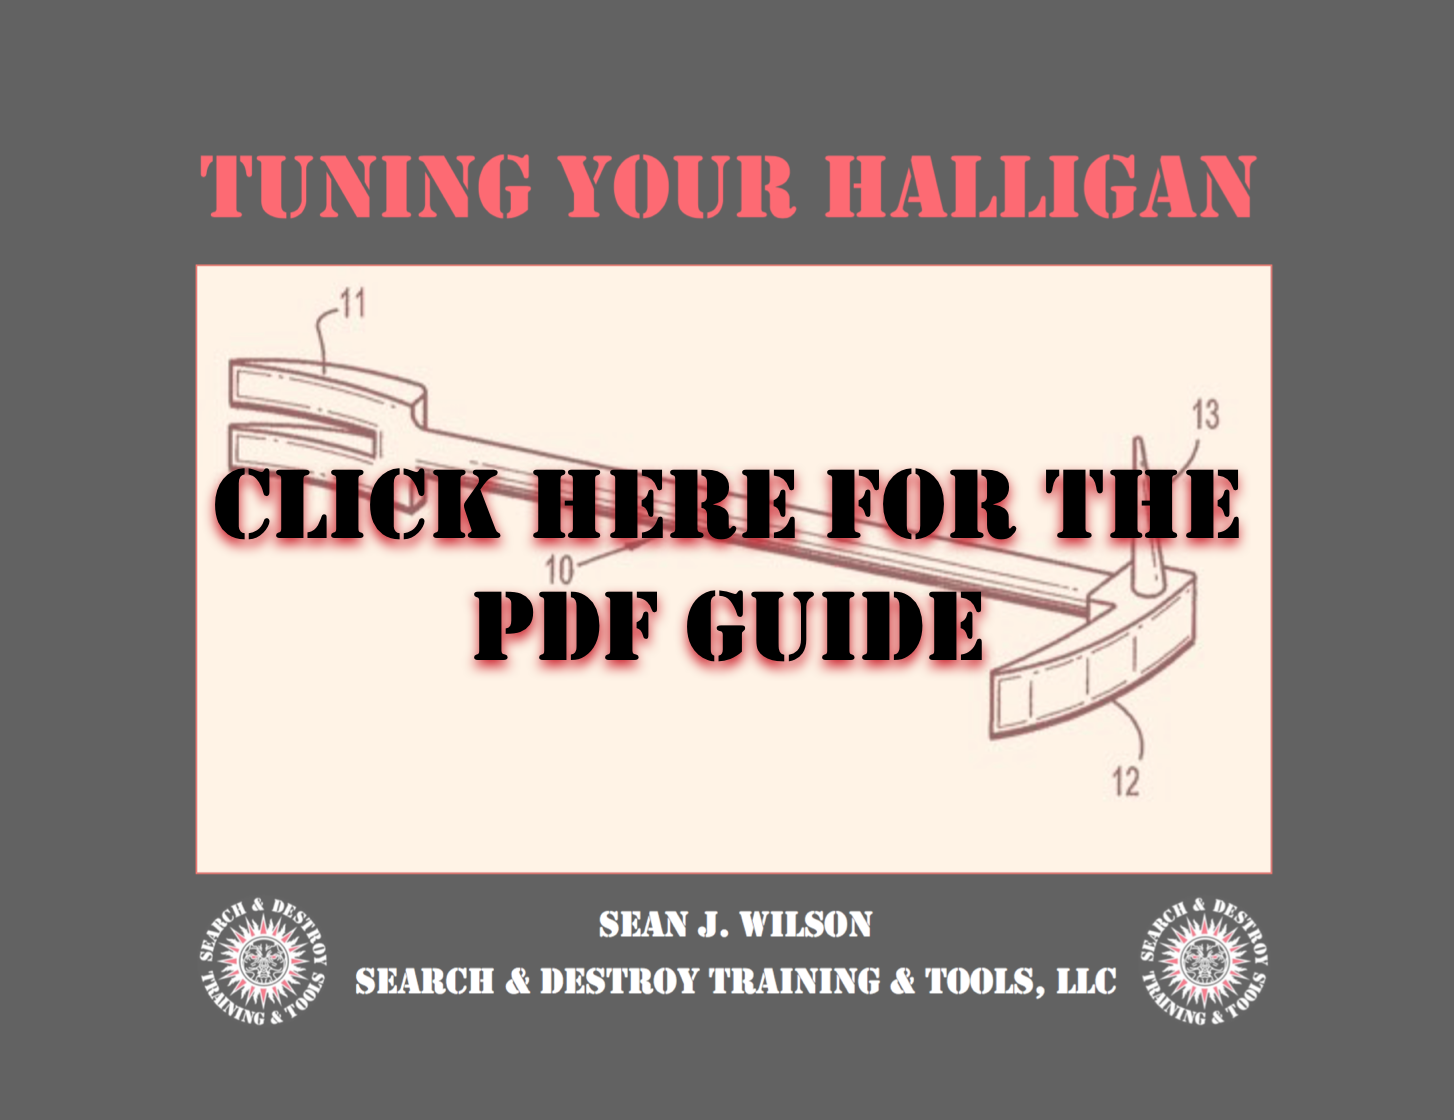 Halligan Tuning Guide Photo